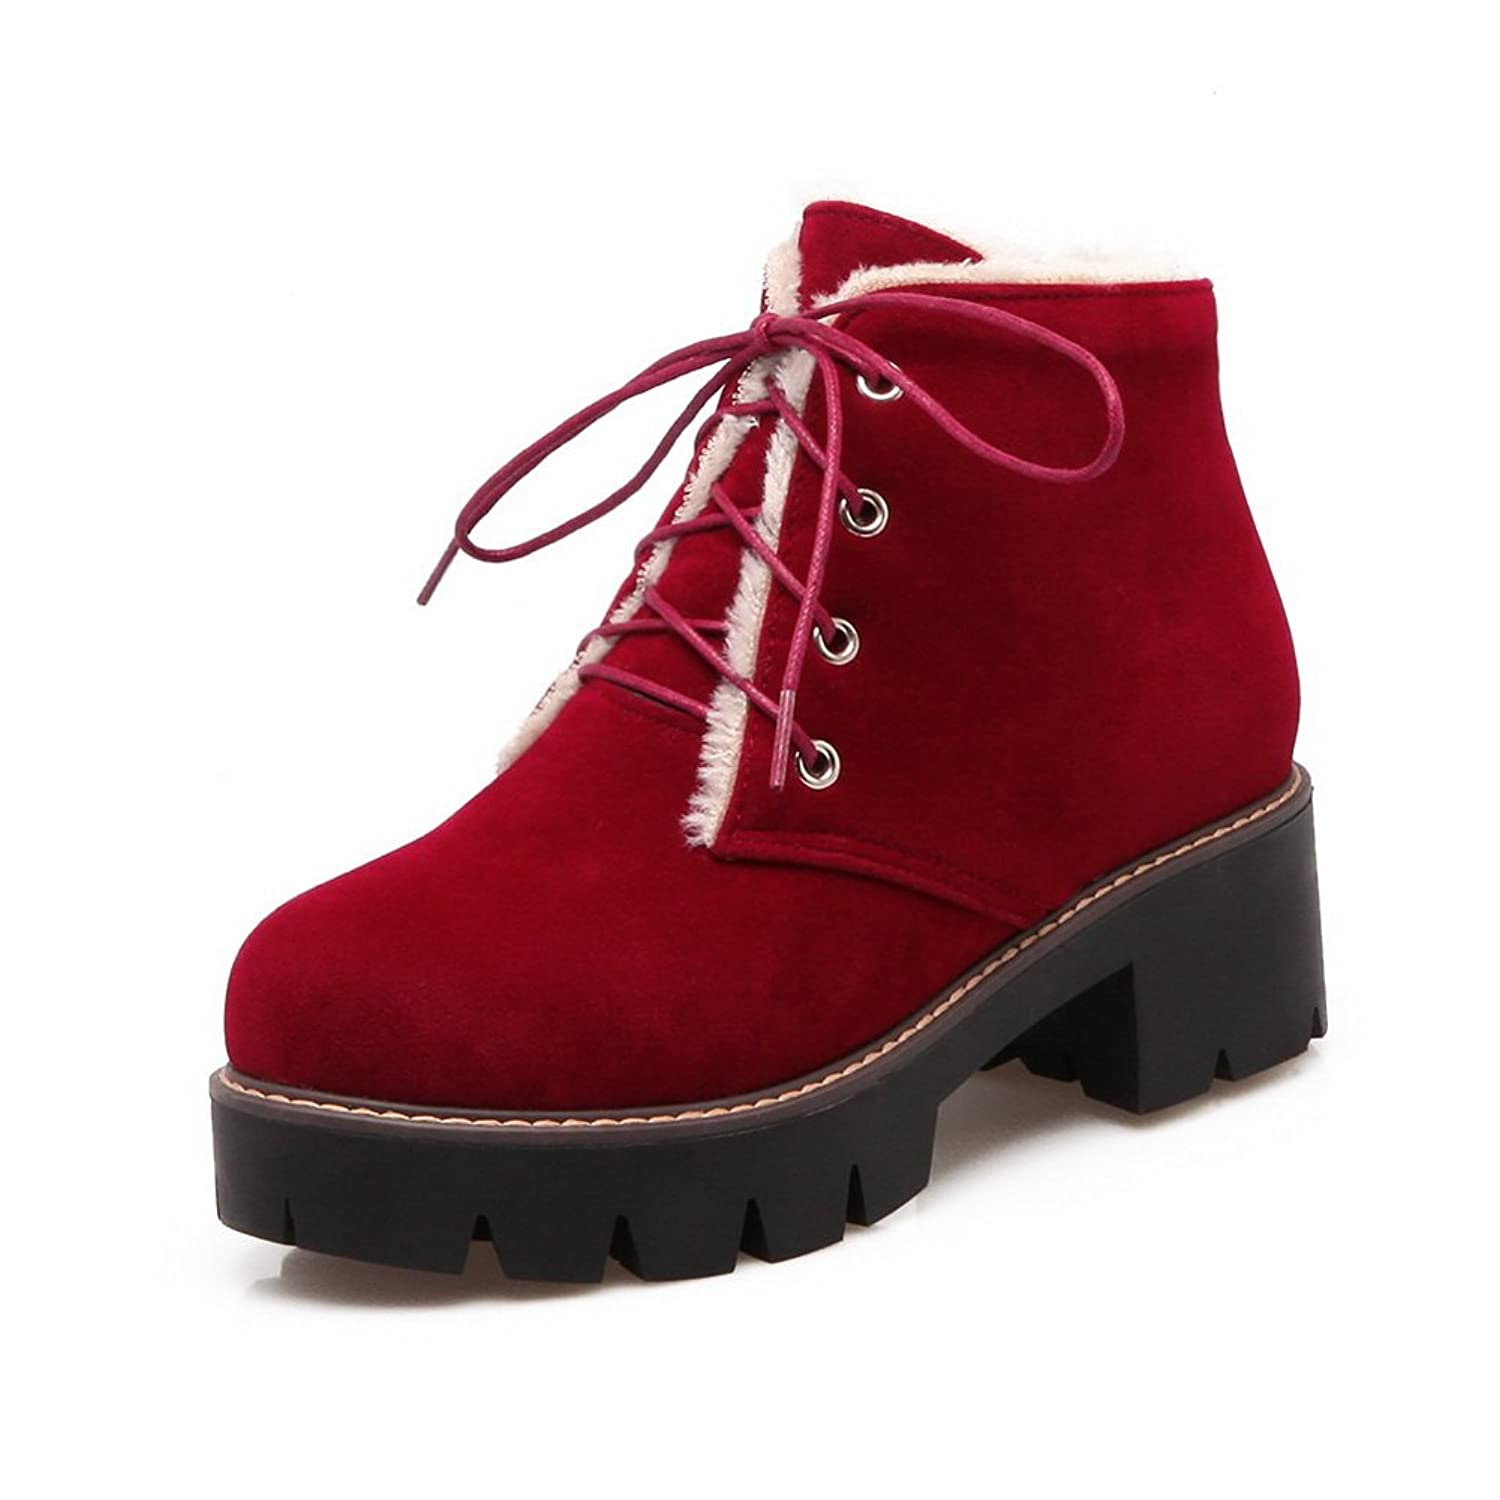 AdeeSu Womens Outdoor Lace-Up Ankle-High Platform Suede Boots SXC02417